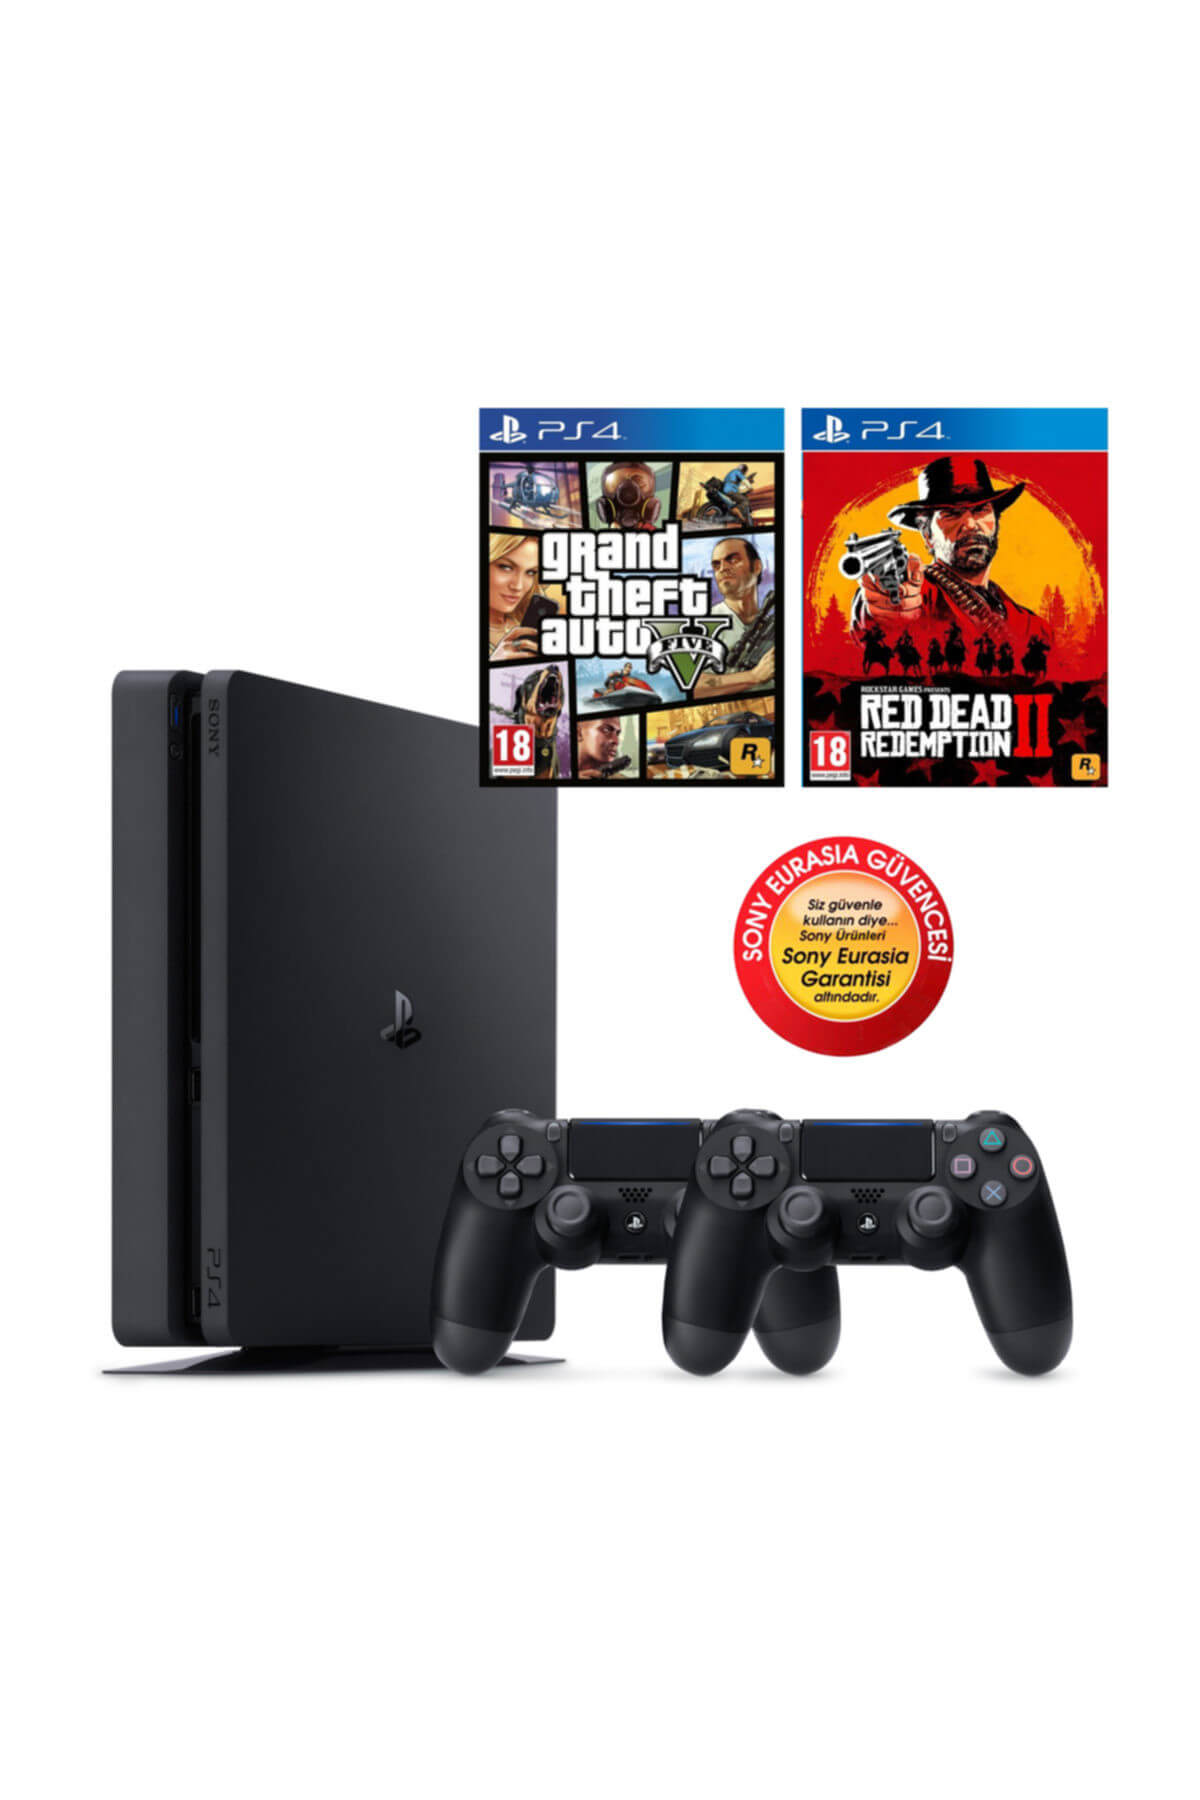 Sony Ps4 Slim 500gb Oyun Konsolu Eurasia Garantili + Ps4 Gta 5 Red Dead Redemption 2 2.